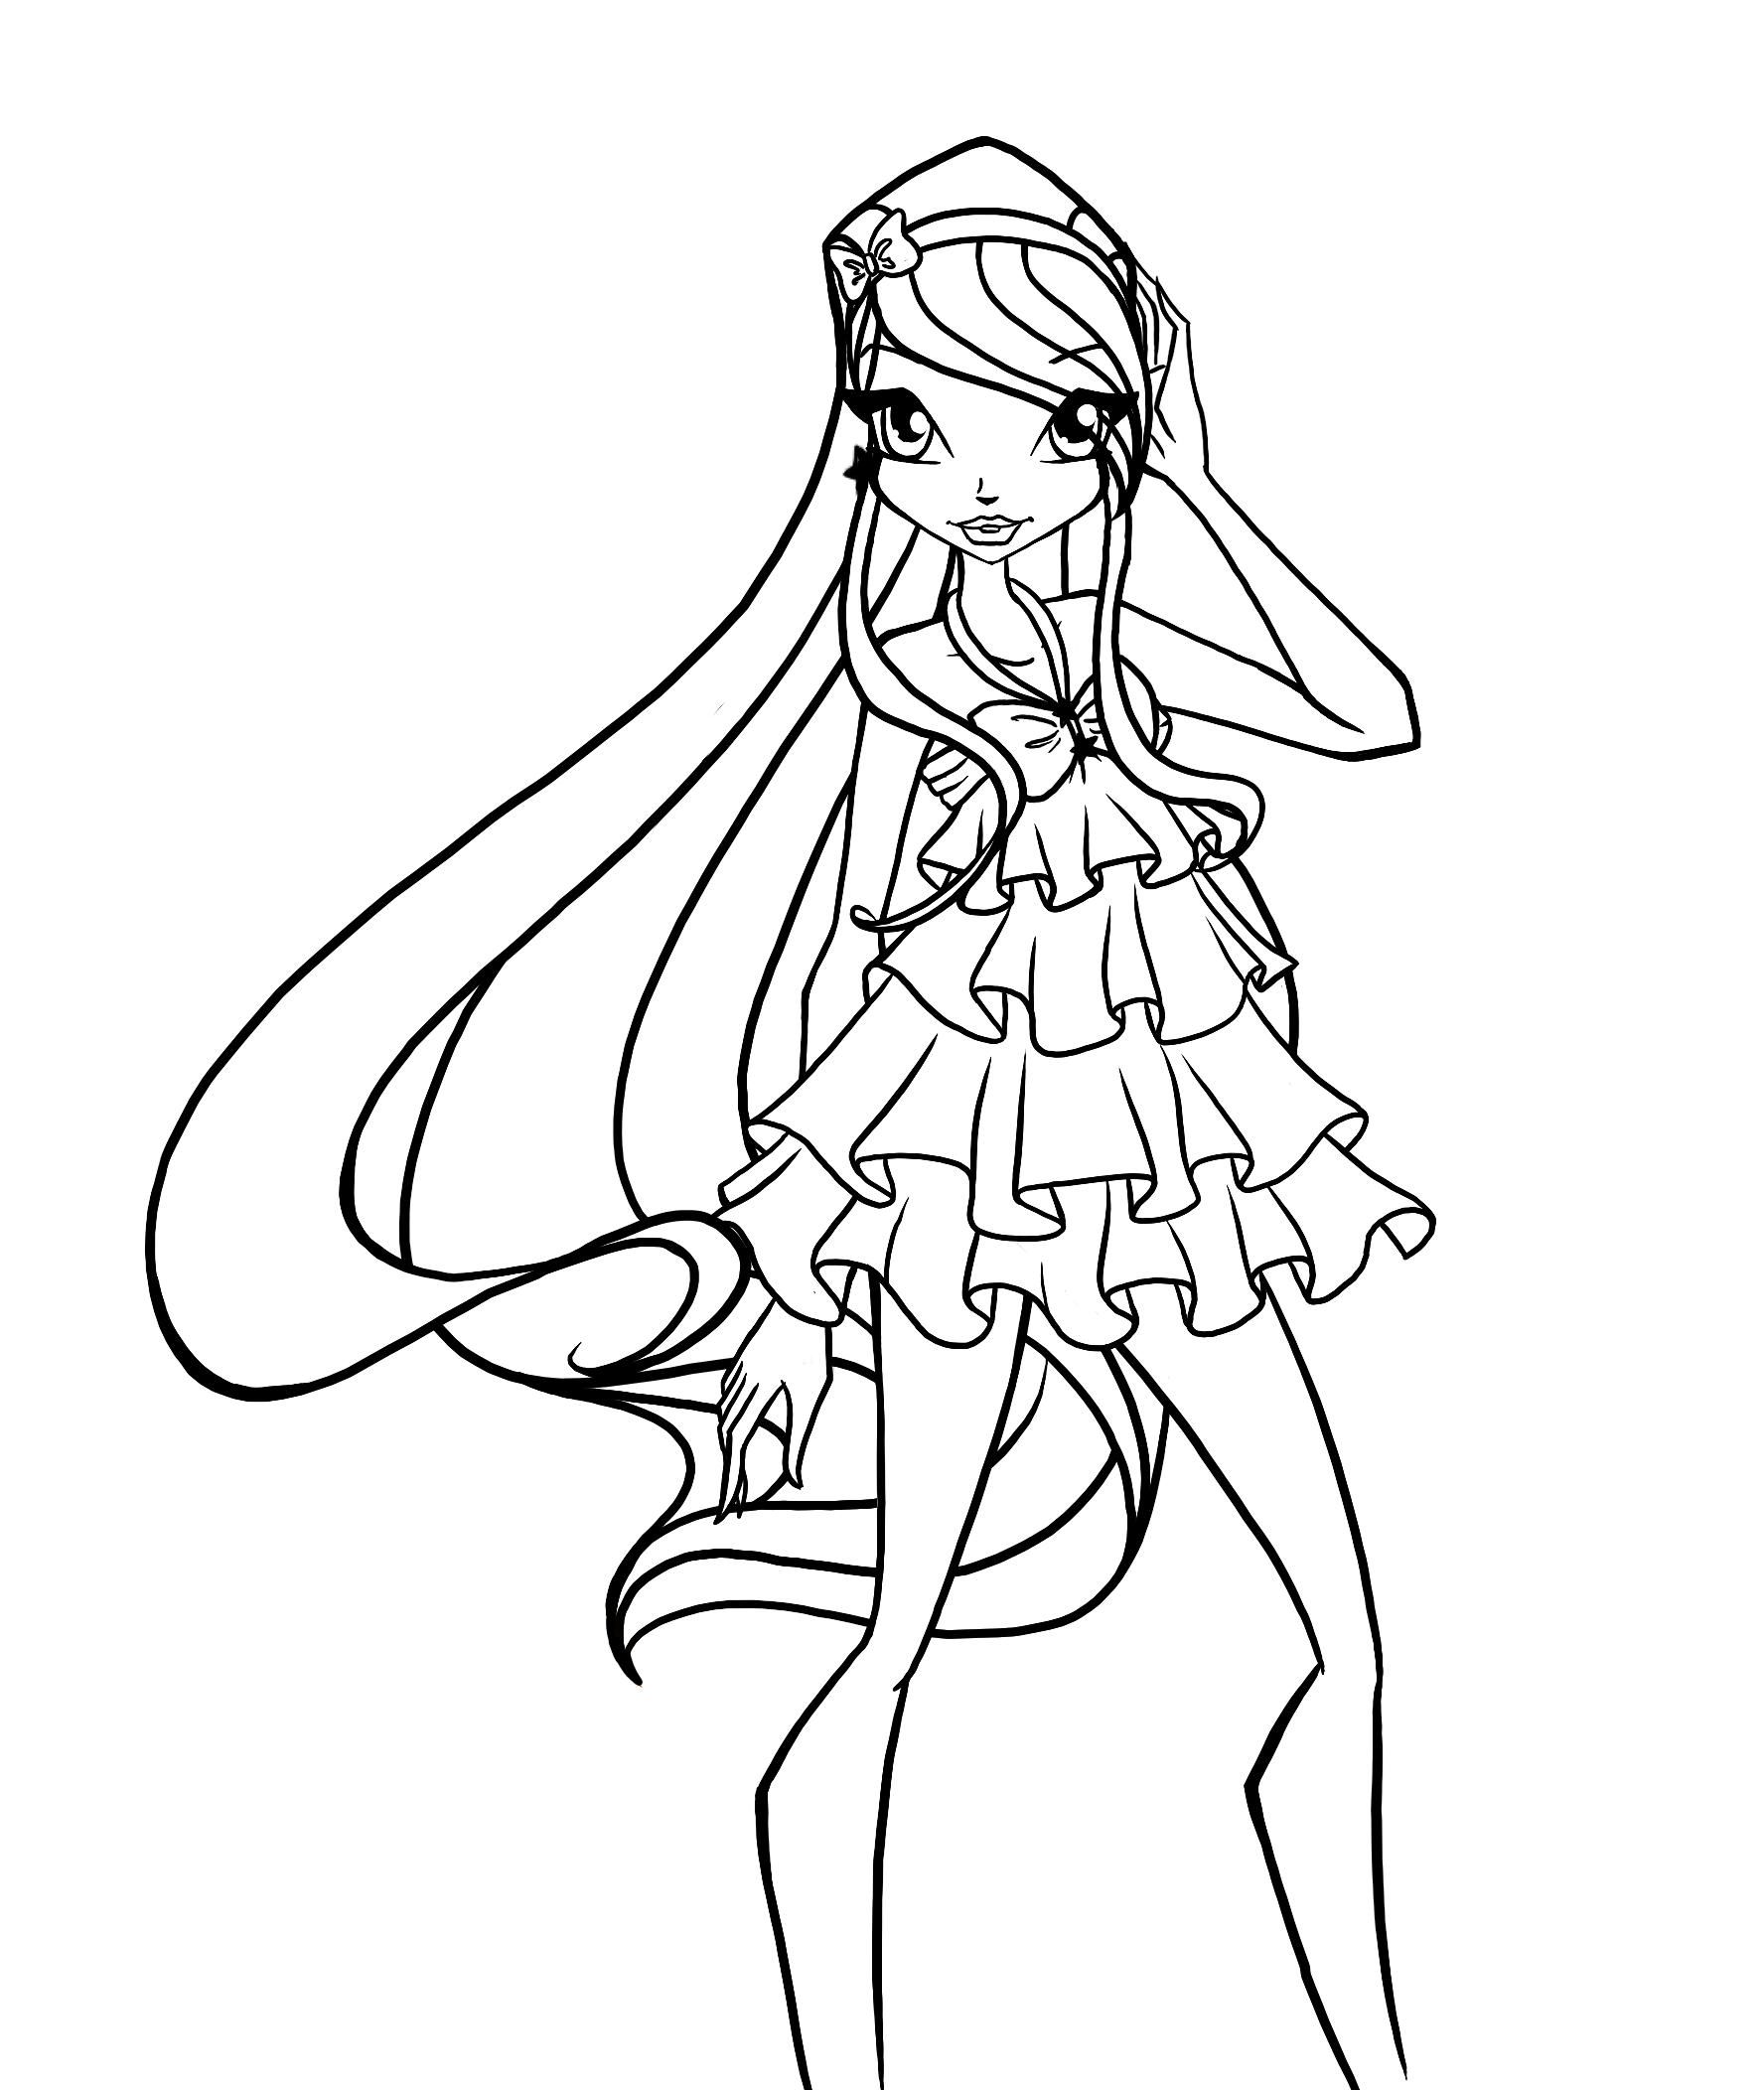 winx club pictures black and white winx princess coloring pages download and print for free black pictures and winx white club